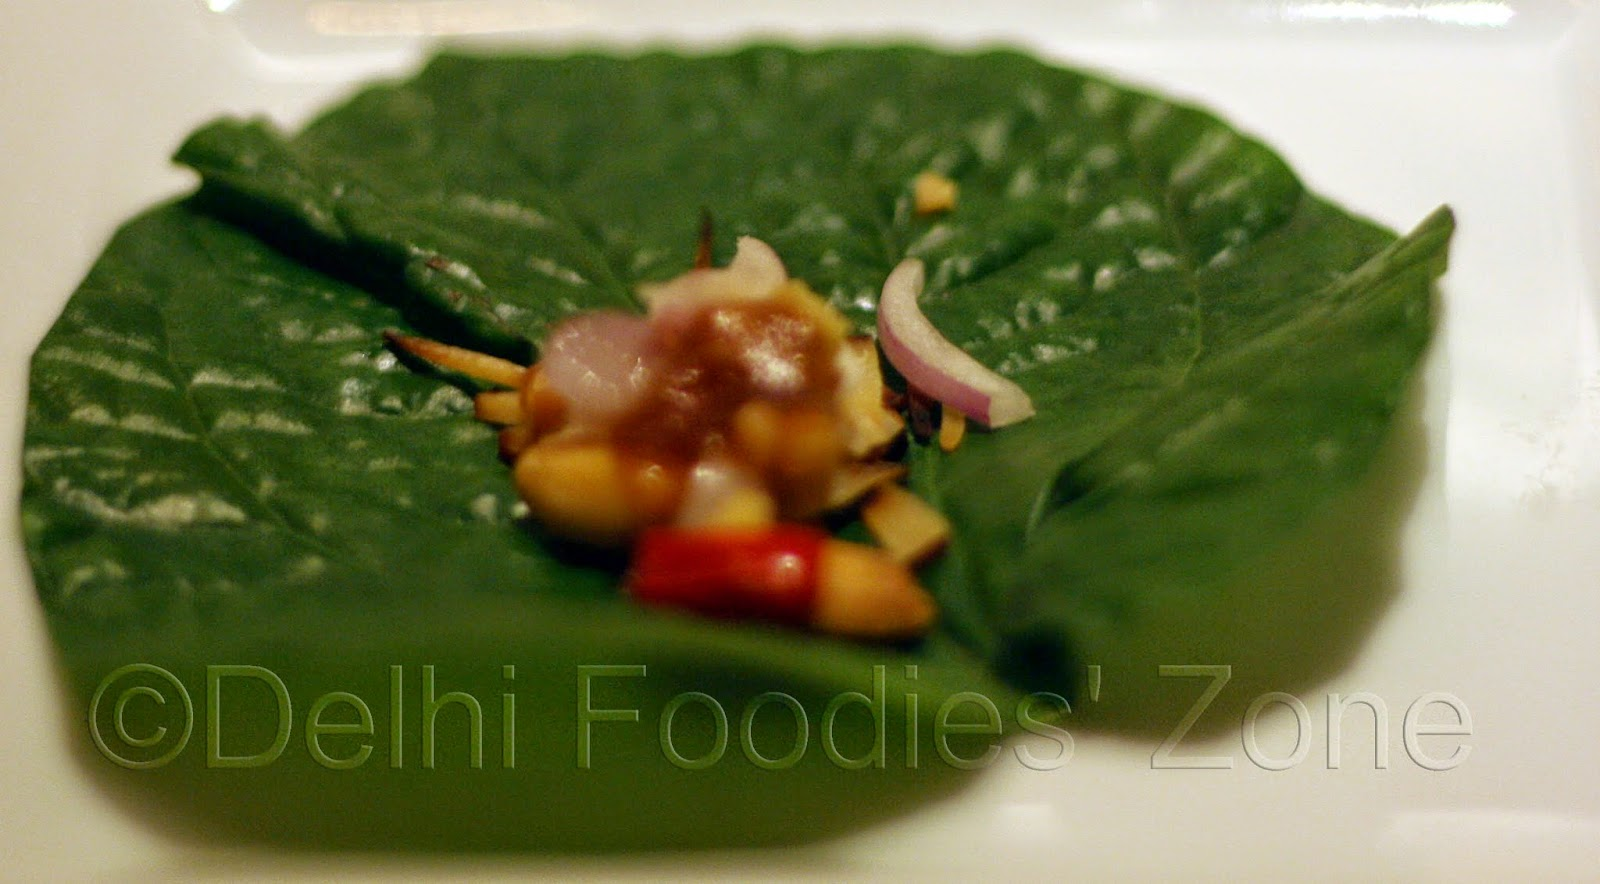 neung-roi-thai-food-delhi-radisson-blu-plaza